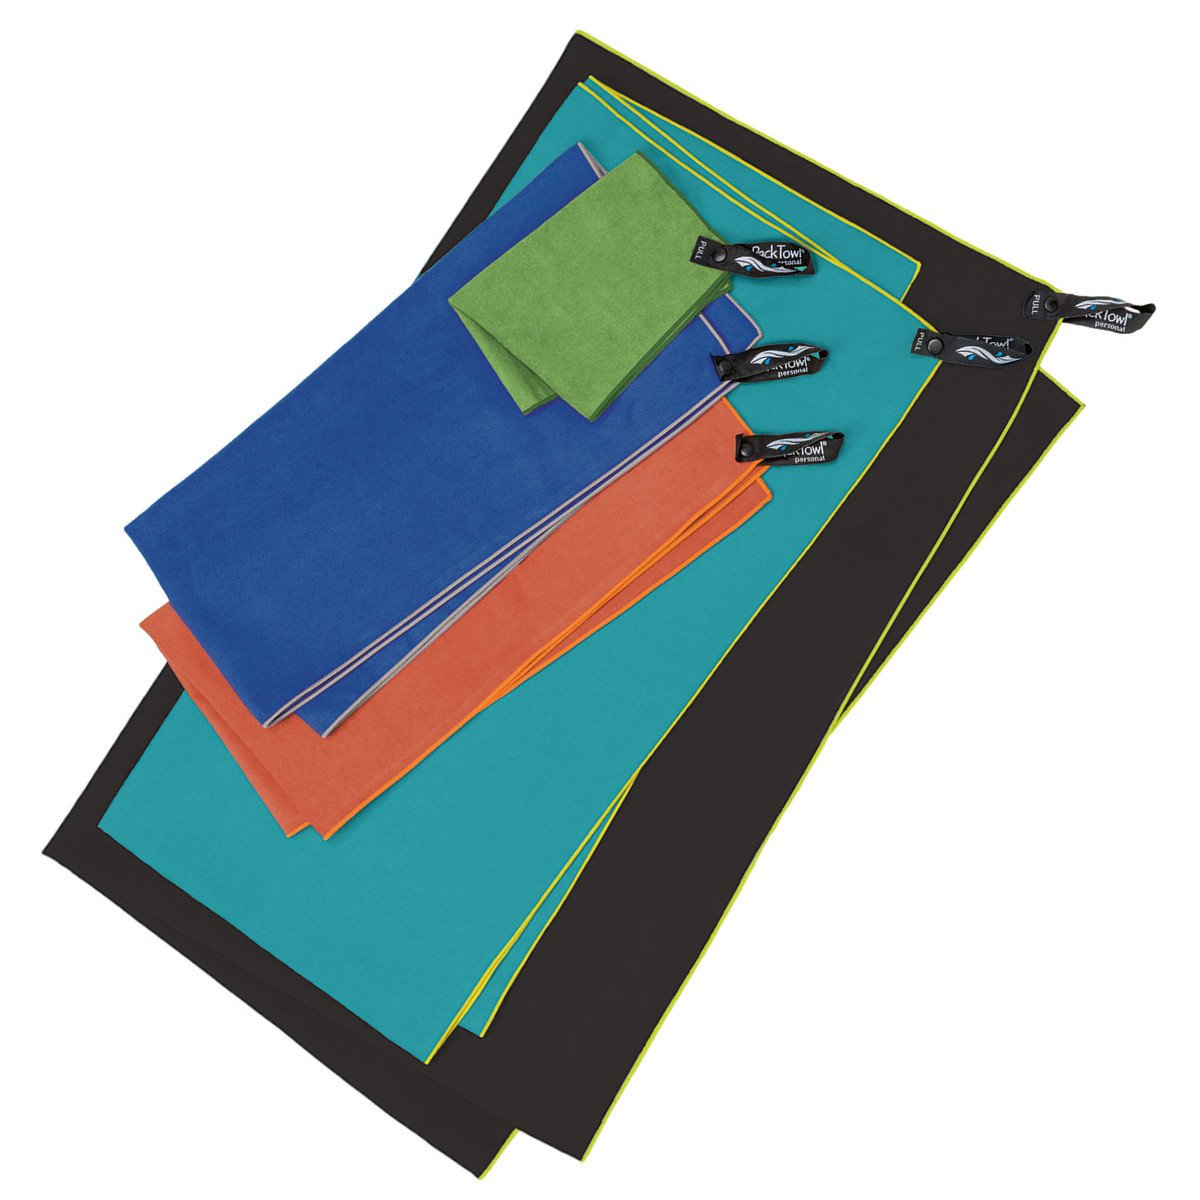 Packtowl Personal travel towels, all sizes and colours shown laid on top of one another